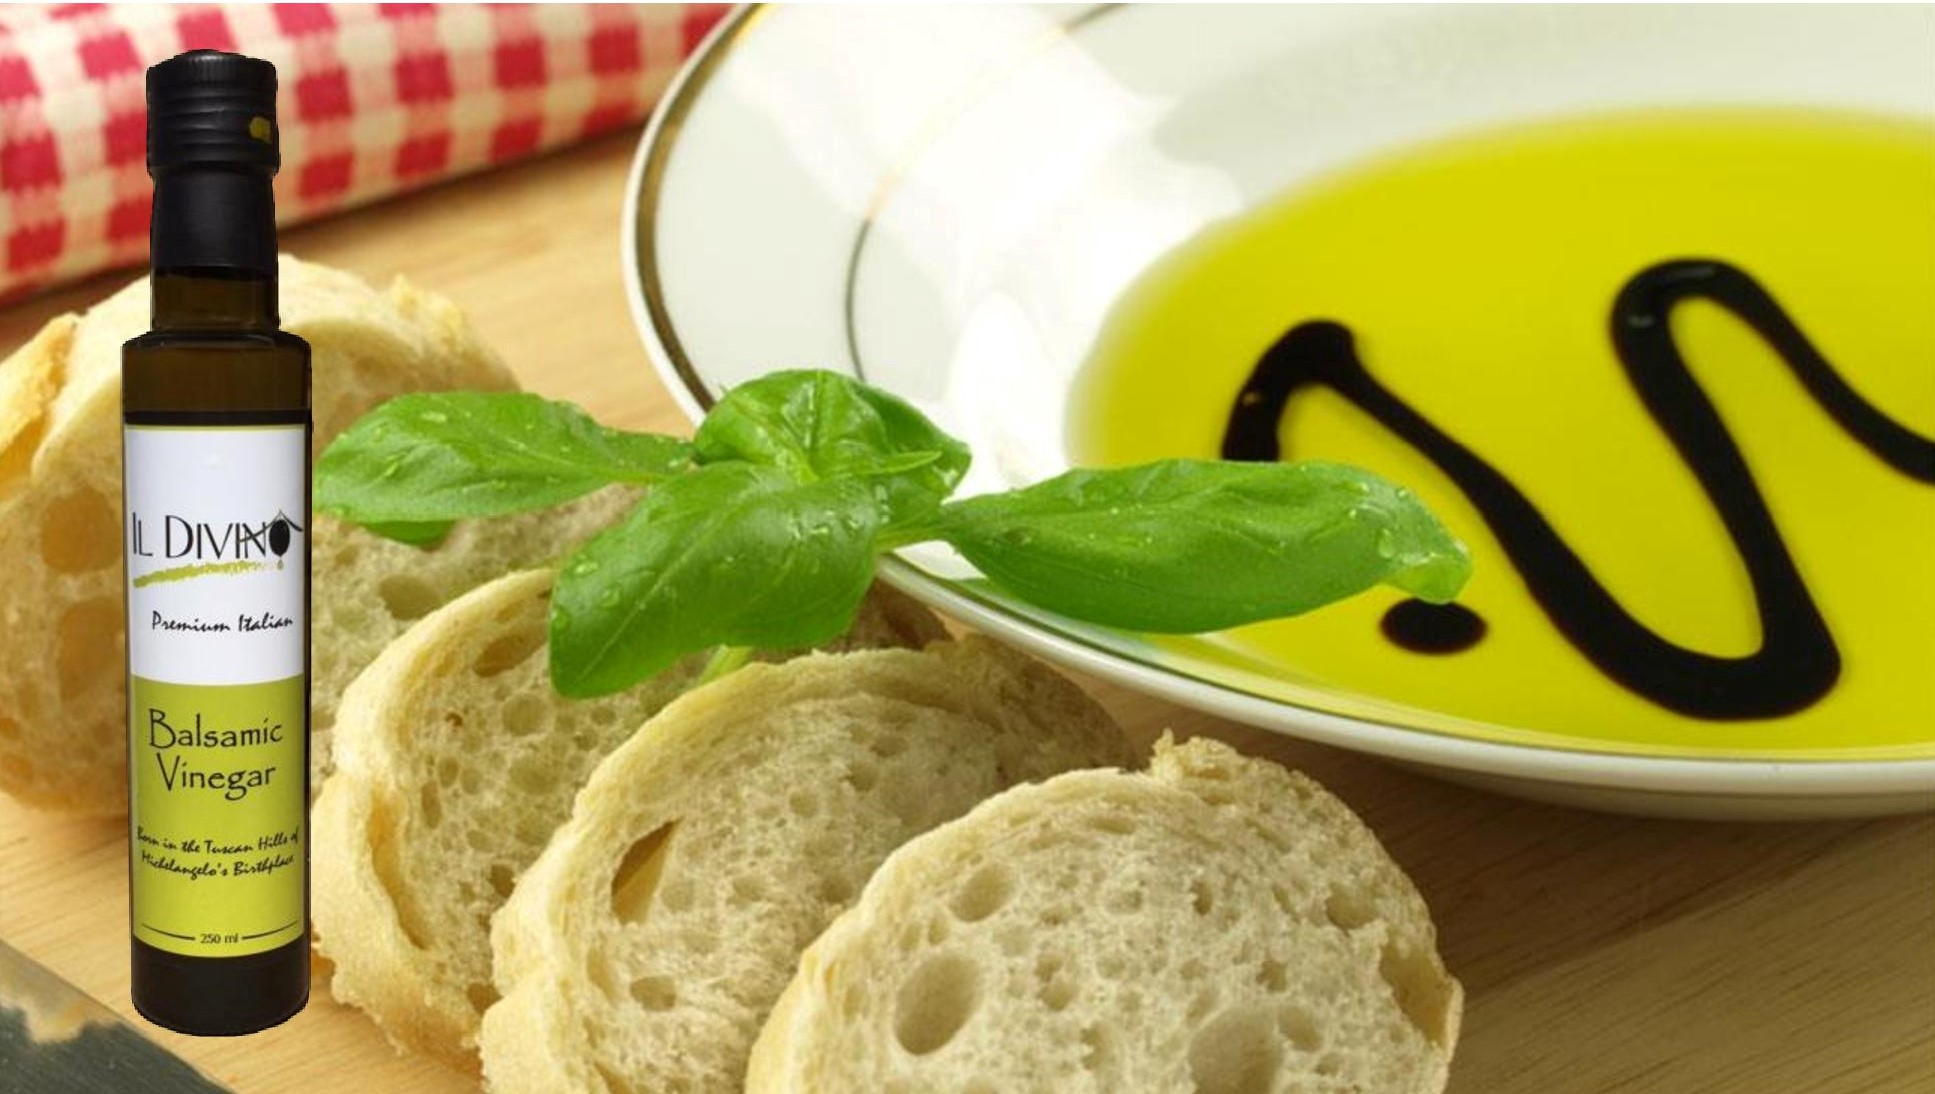 IL DIVINO Balsamic Vinegar is the perfect complement to our IL DIVINO Extra Virgin Olive Oil